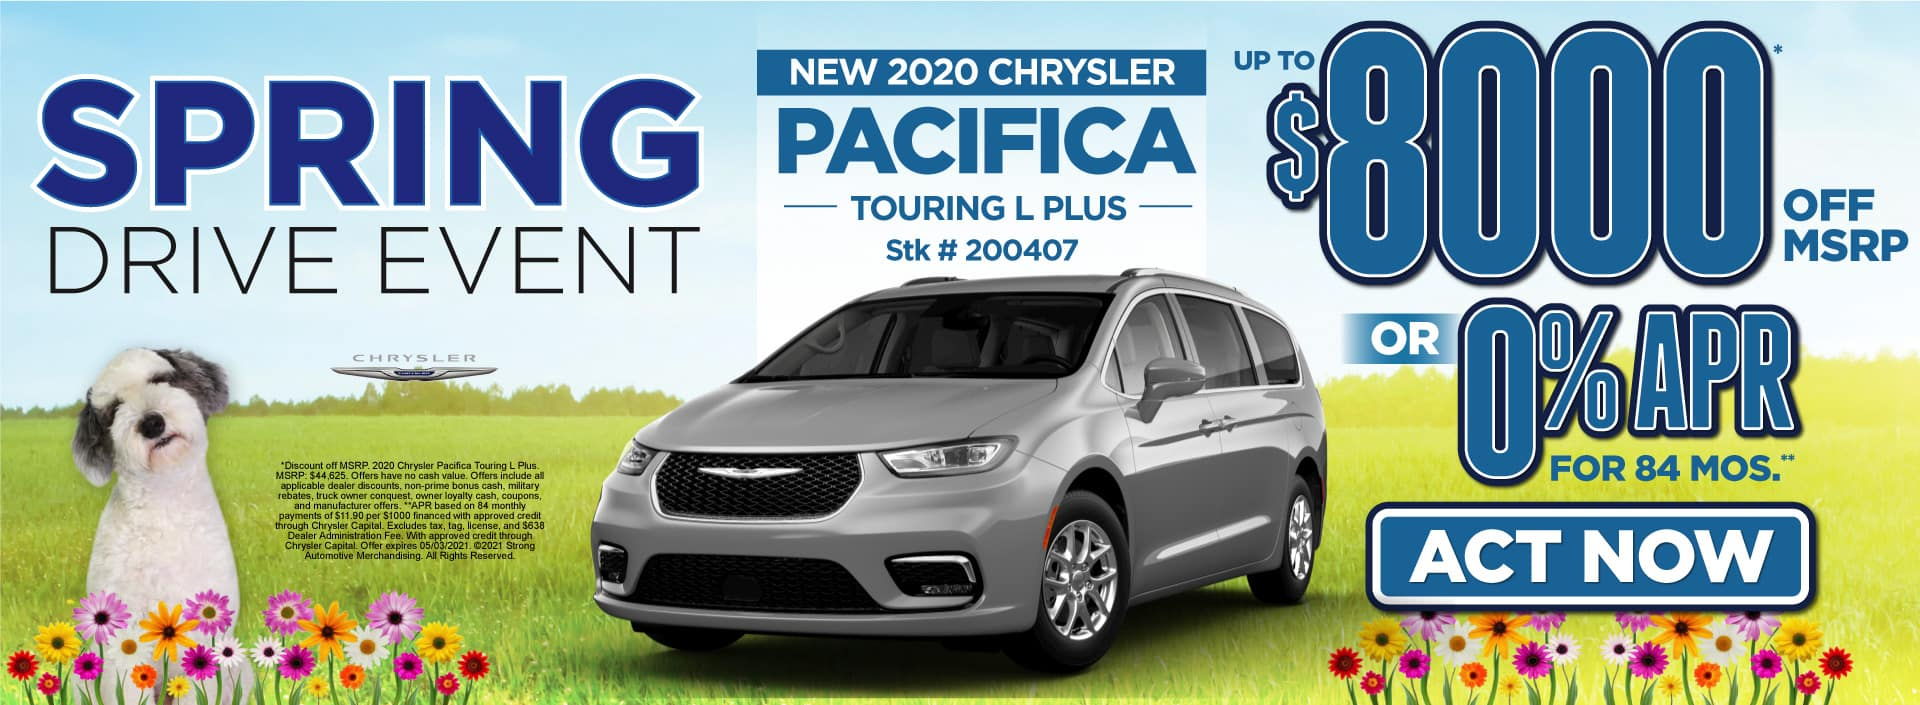 New 2020 Chrysler Pacifica - $8000 off msrp - Act Now